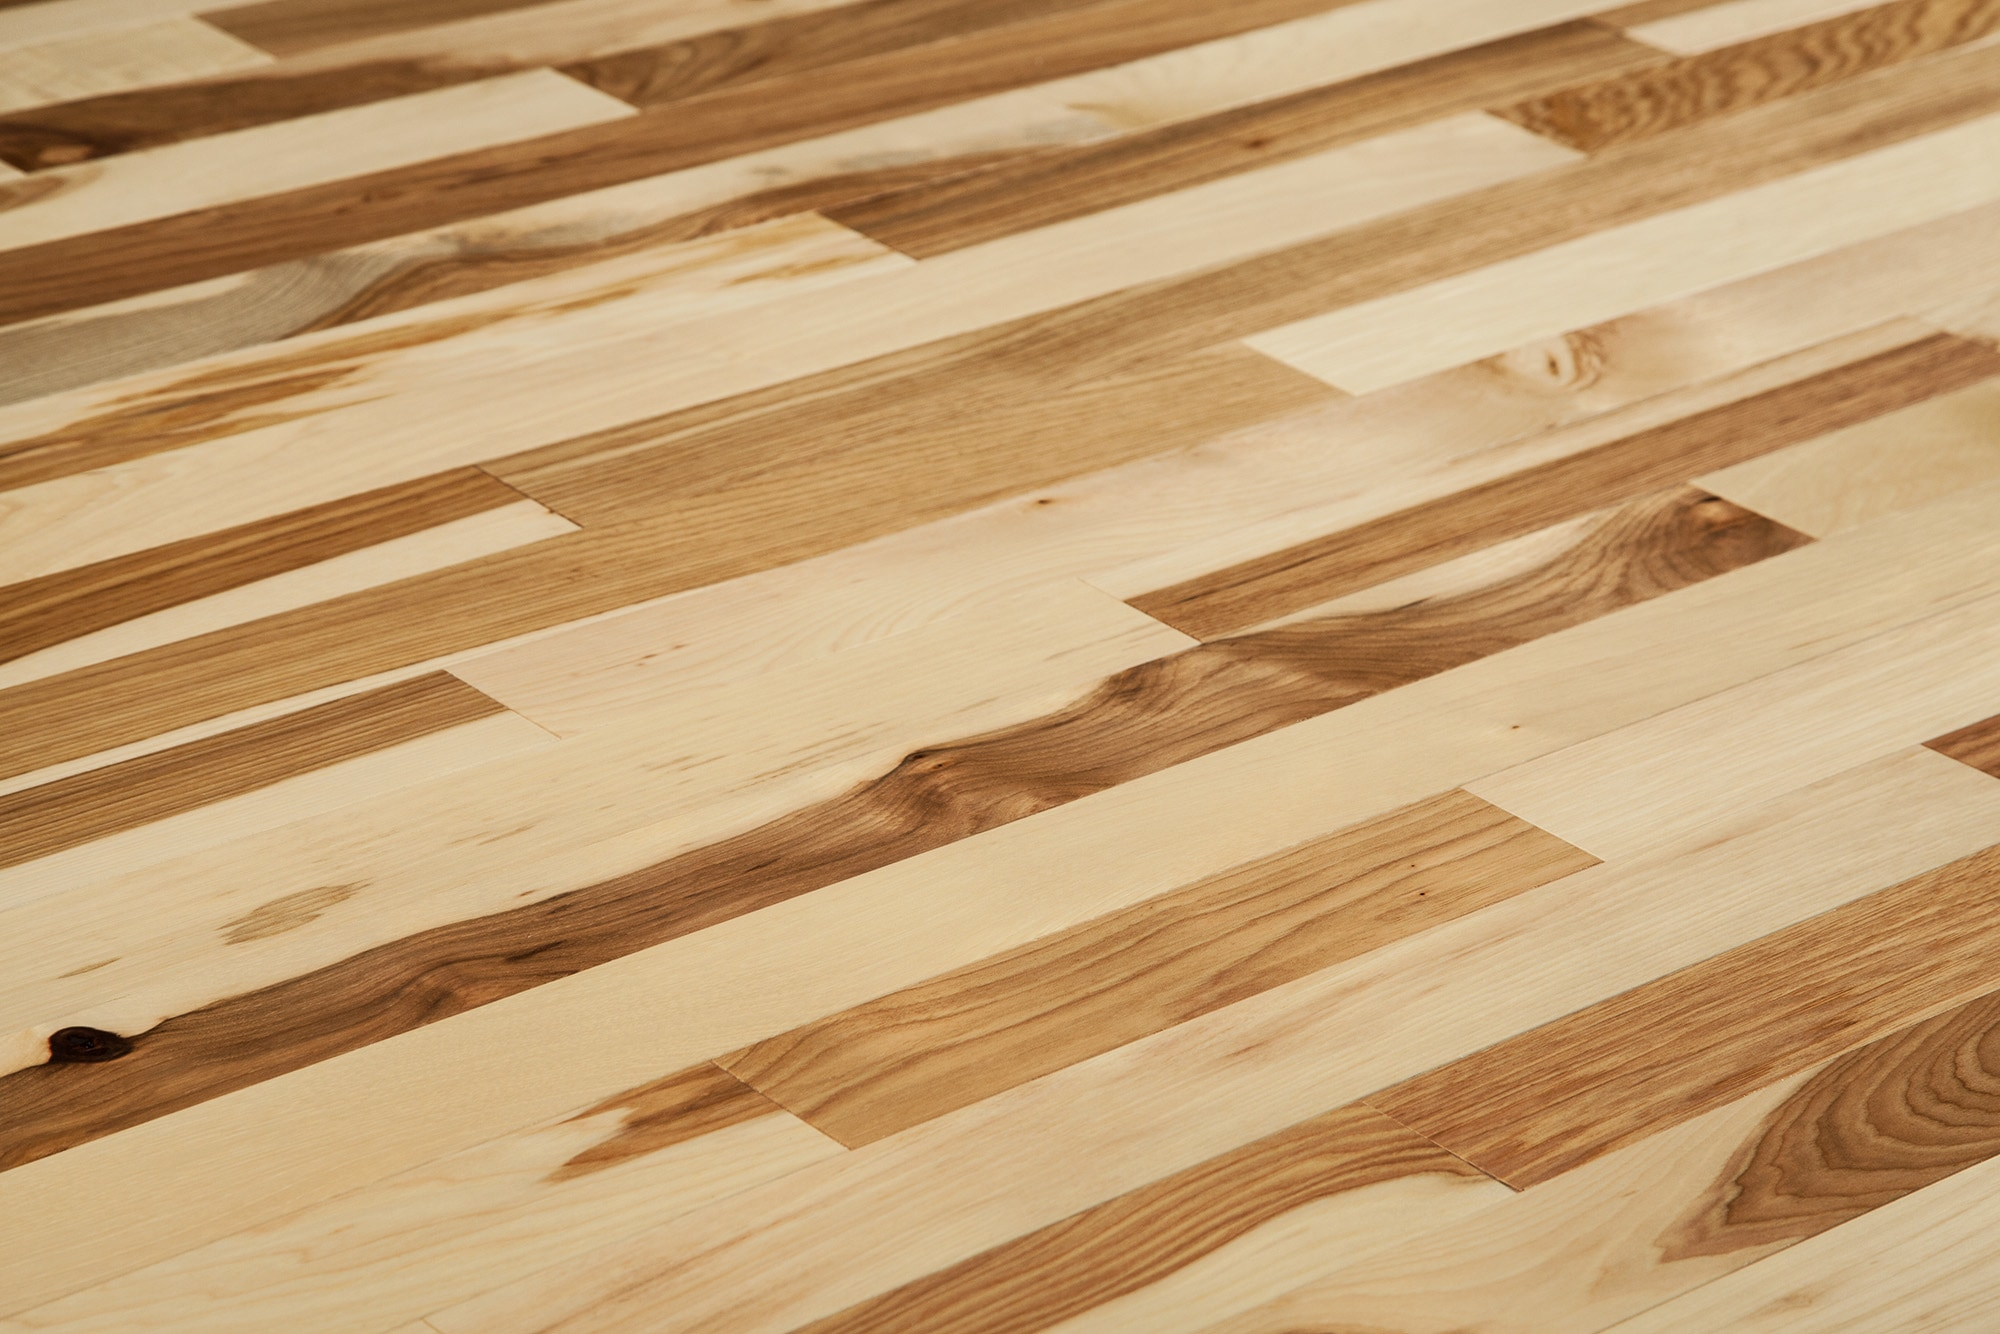 Free samples jasper hardwood hickory collection natural hickory cottage 2 25 semi gloss